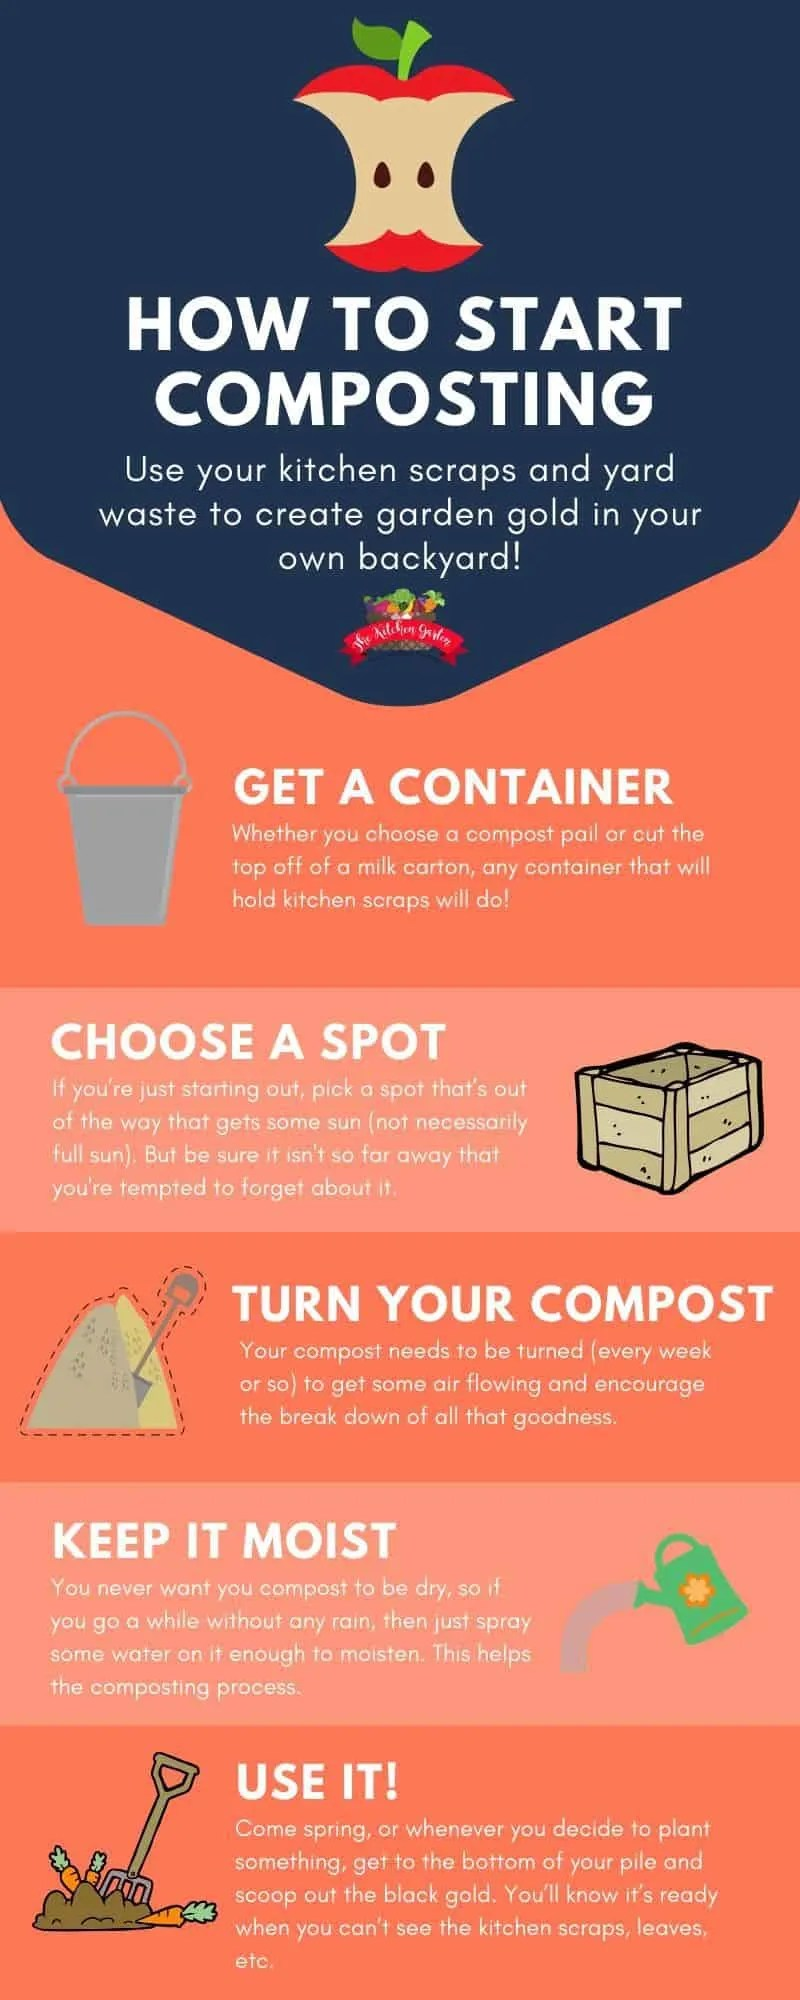 how to start composting infographic